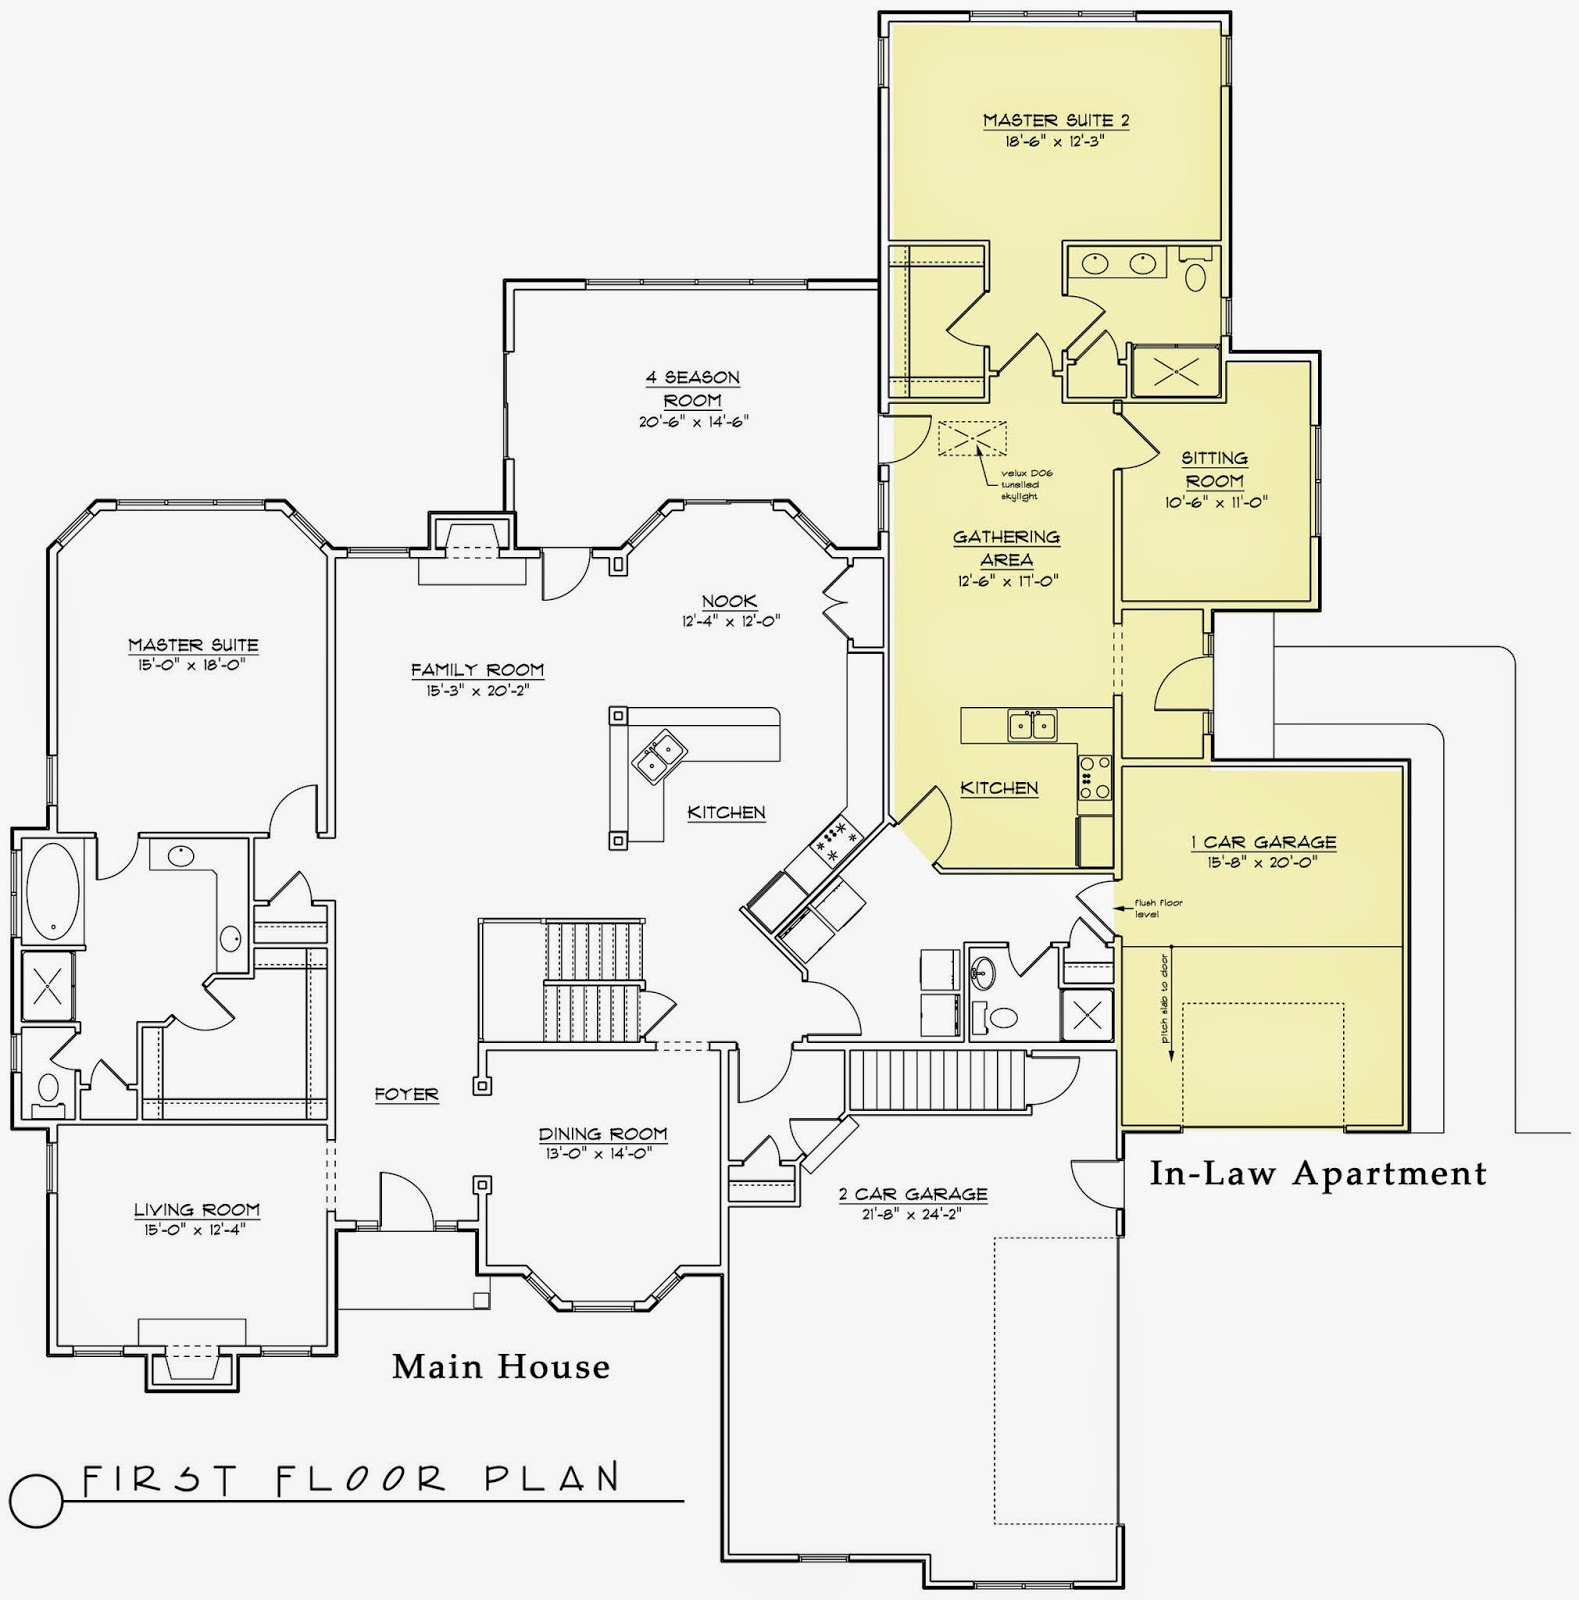 Hodorowski homes rising trend for in law apartments for In law floor plans